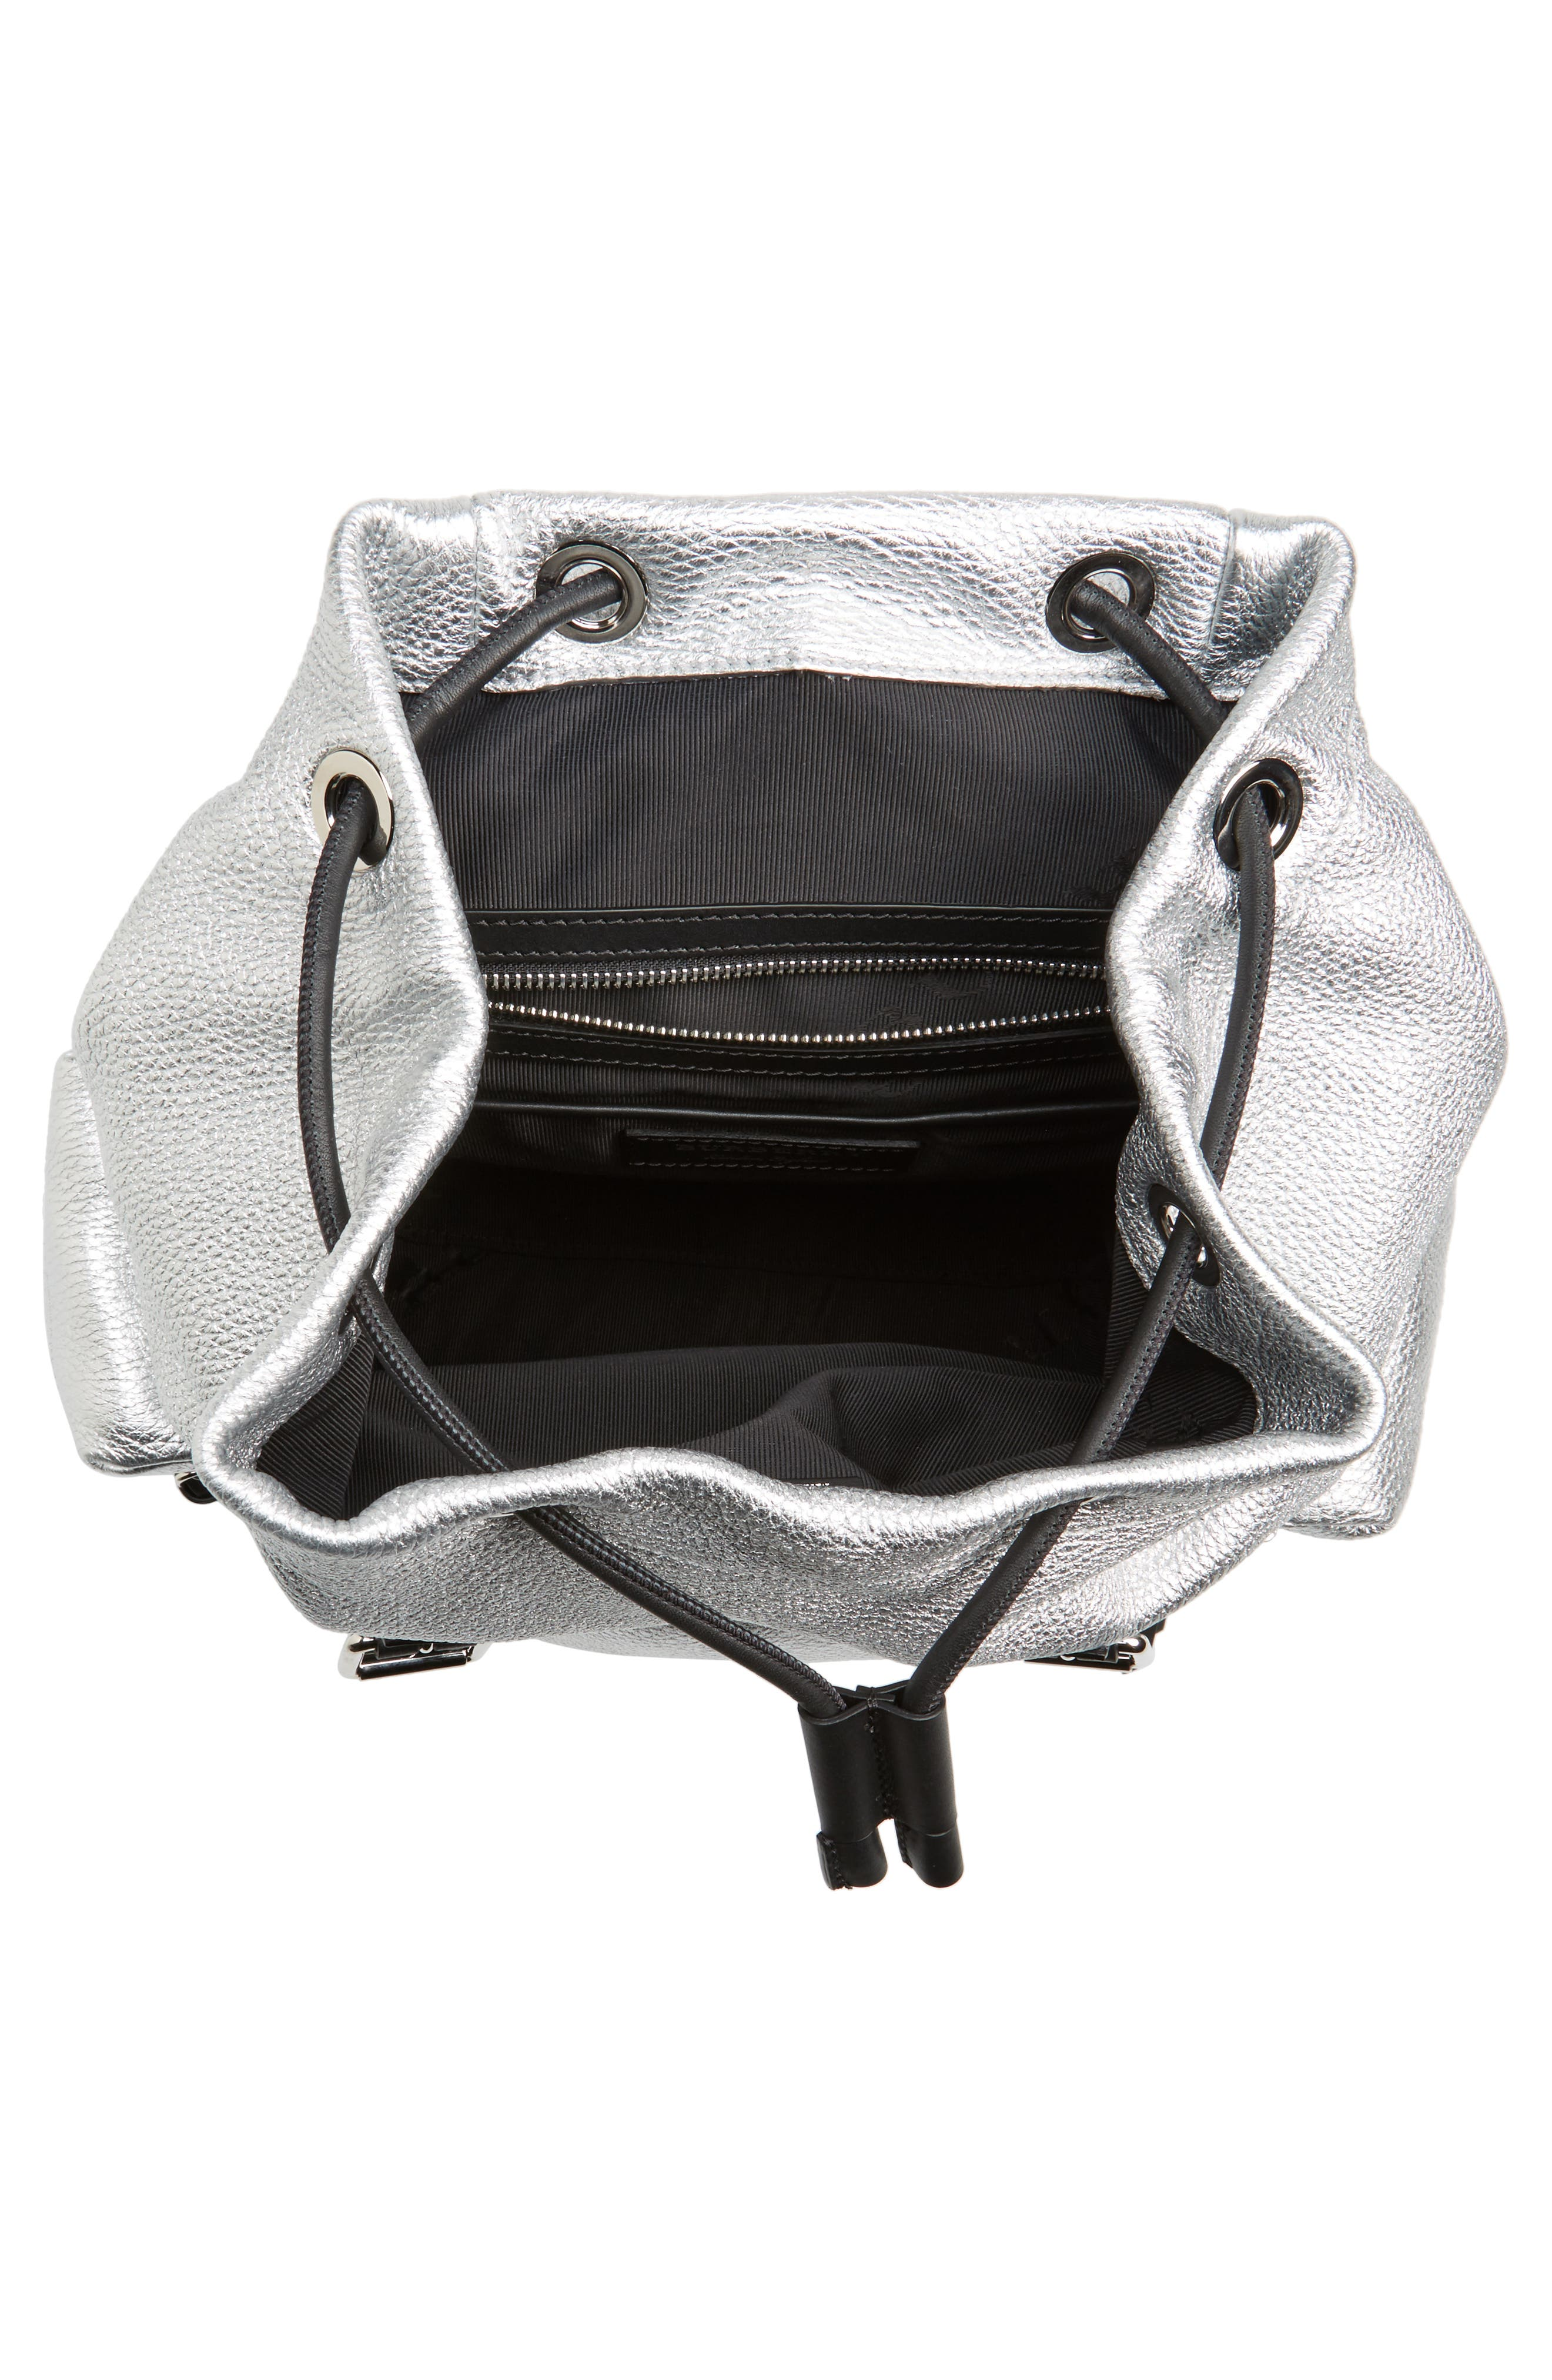 Medium Rucksack Metallic Leather Backpack,                             Alternate thumbnail 4, color,                             040